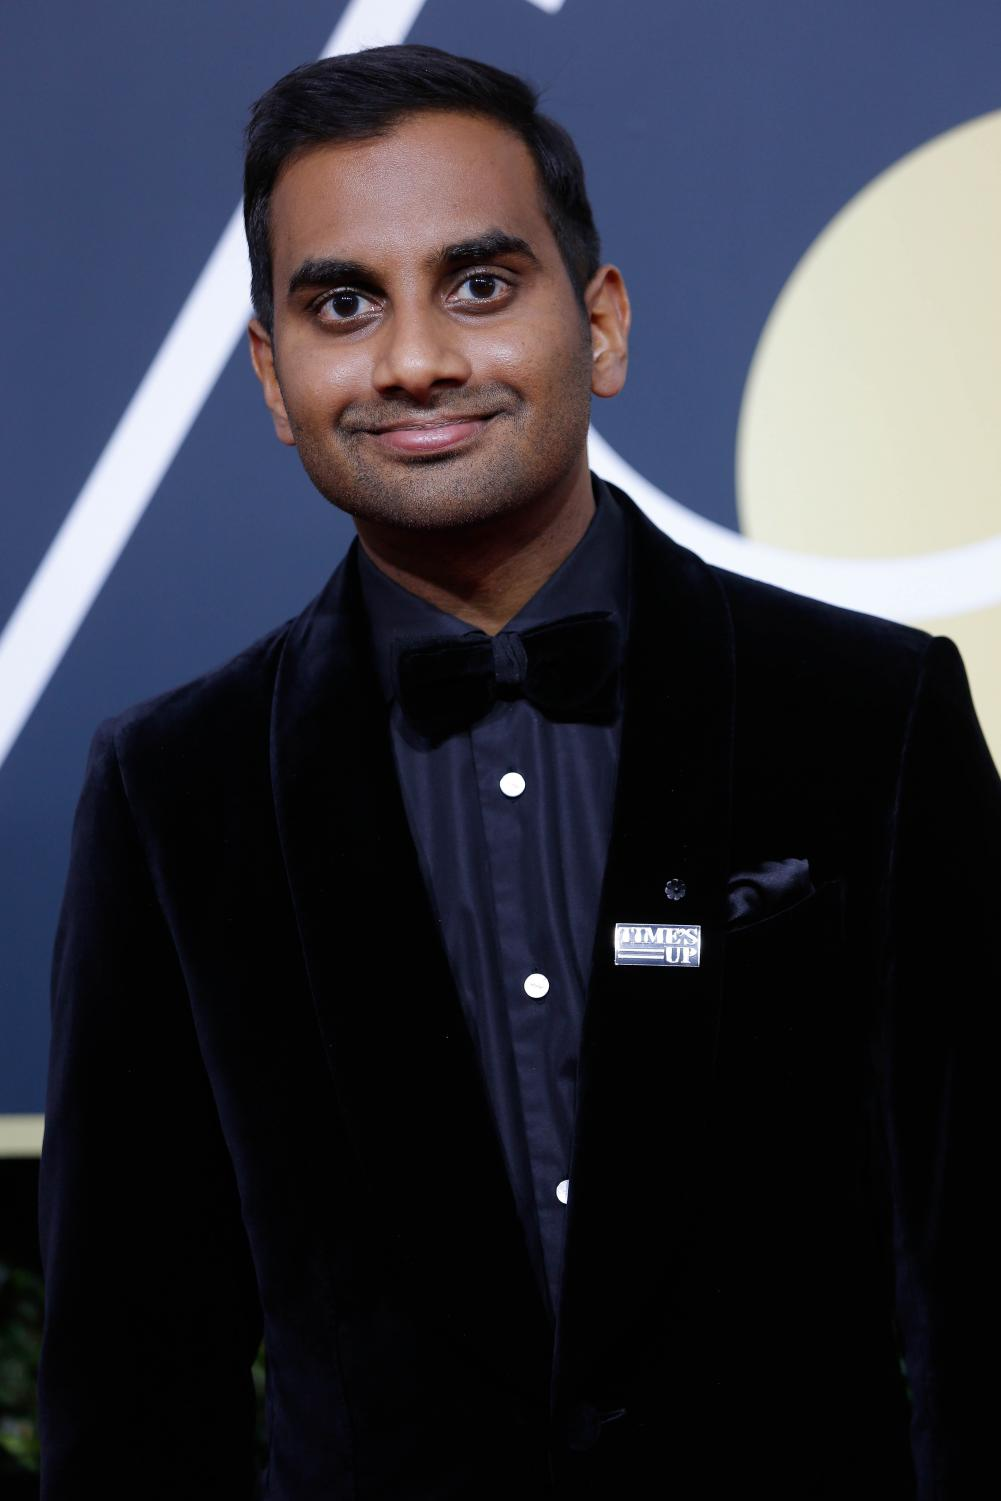 Aziz Ansari arrives at the 75th Annual Golden Globes at the Beverly Hilton Hotel in Beverly Hills, Calif., on Sunday, Jan. 7, 2018.